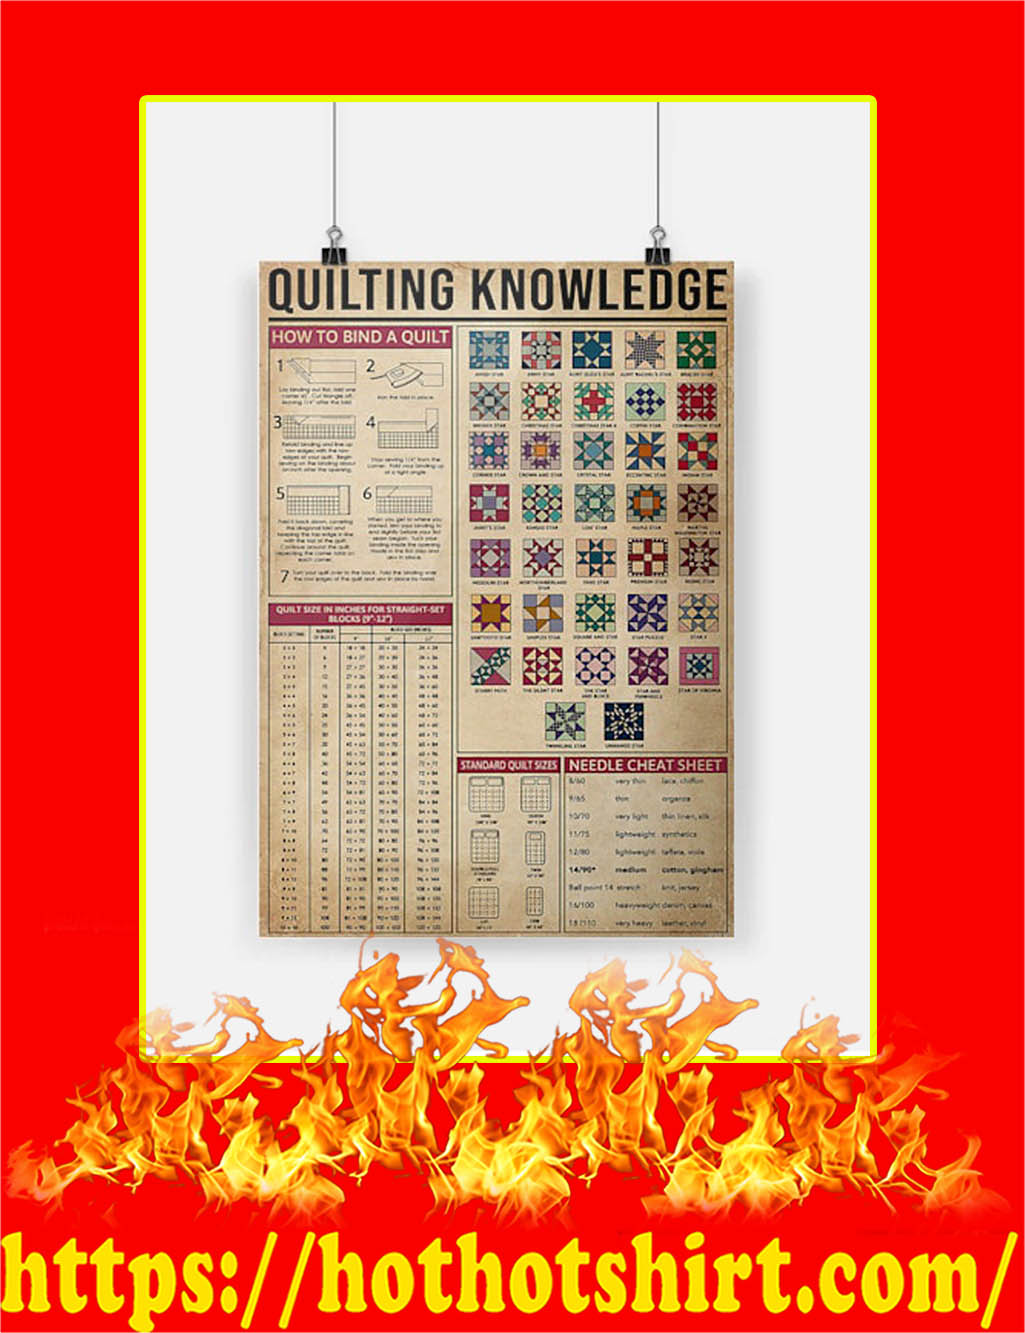 Quilting Knowledge Poster